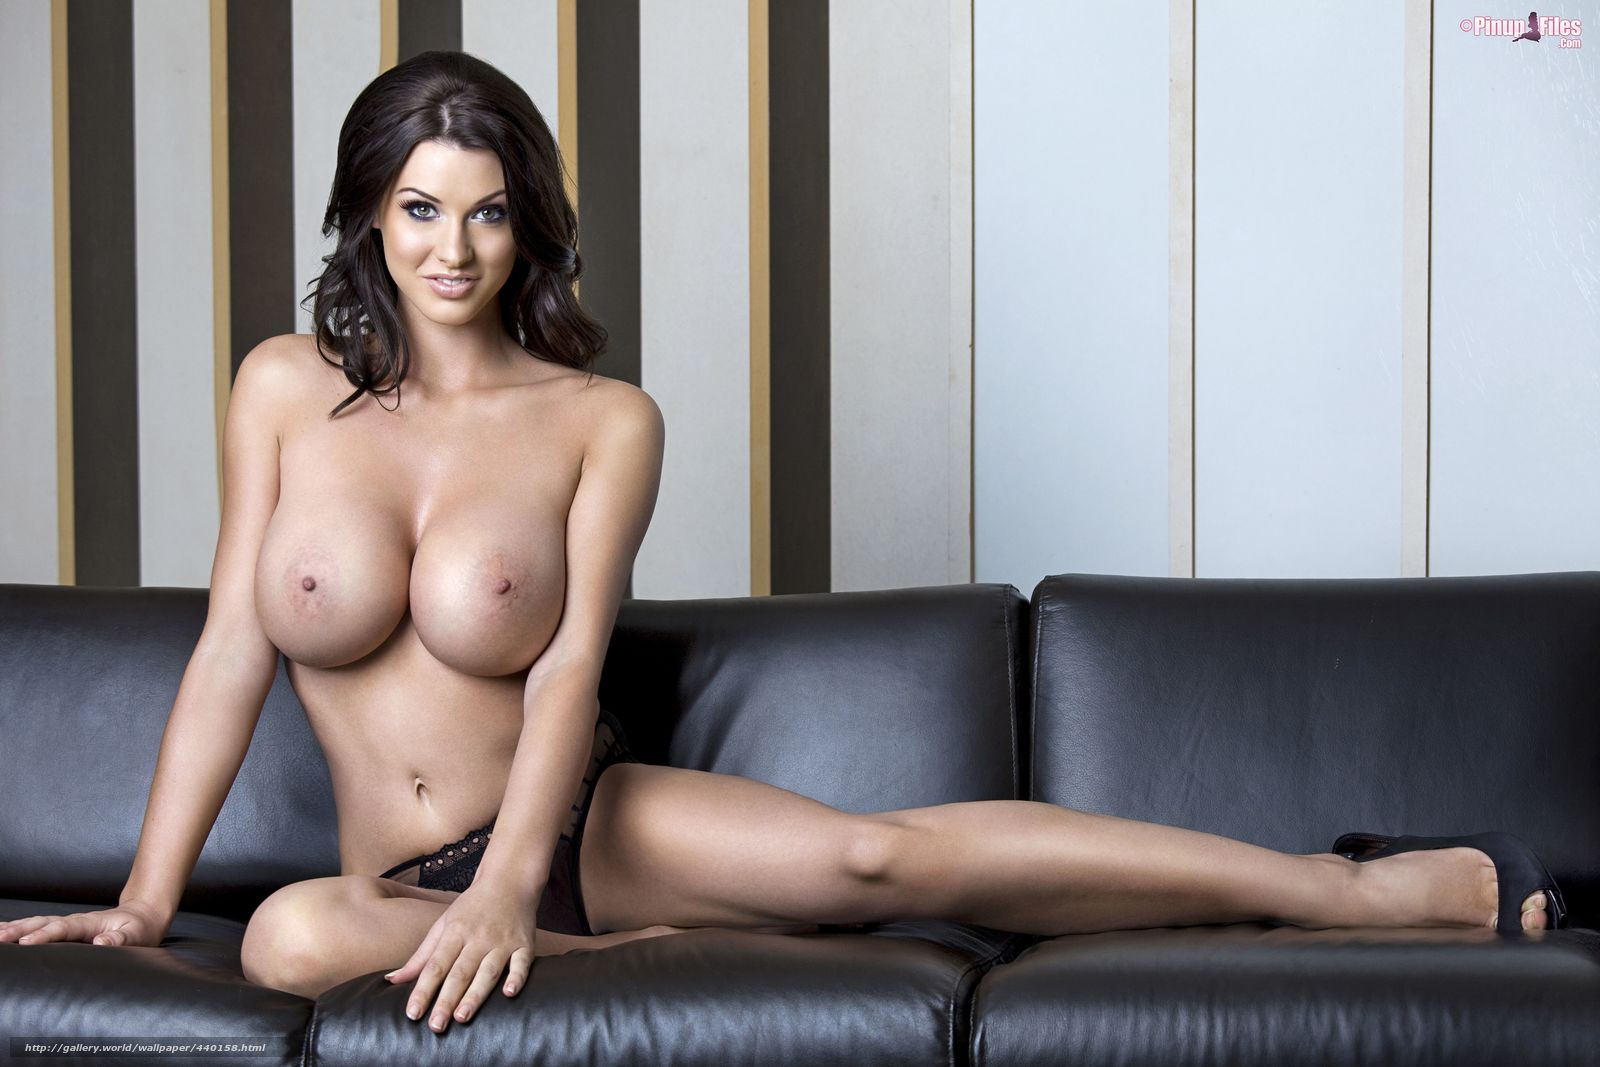 Alice goodwin sex porn hd image downloads sex photo